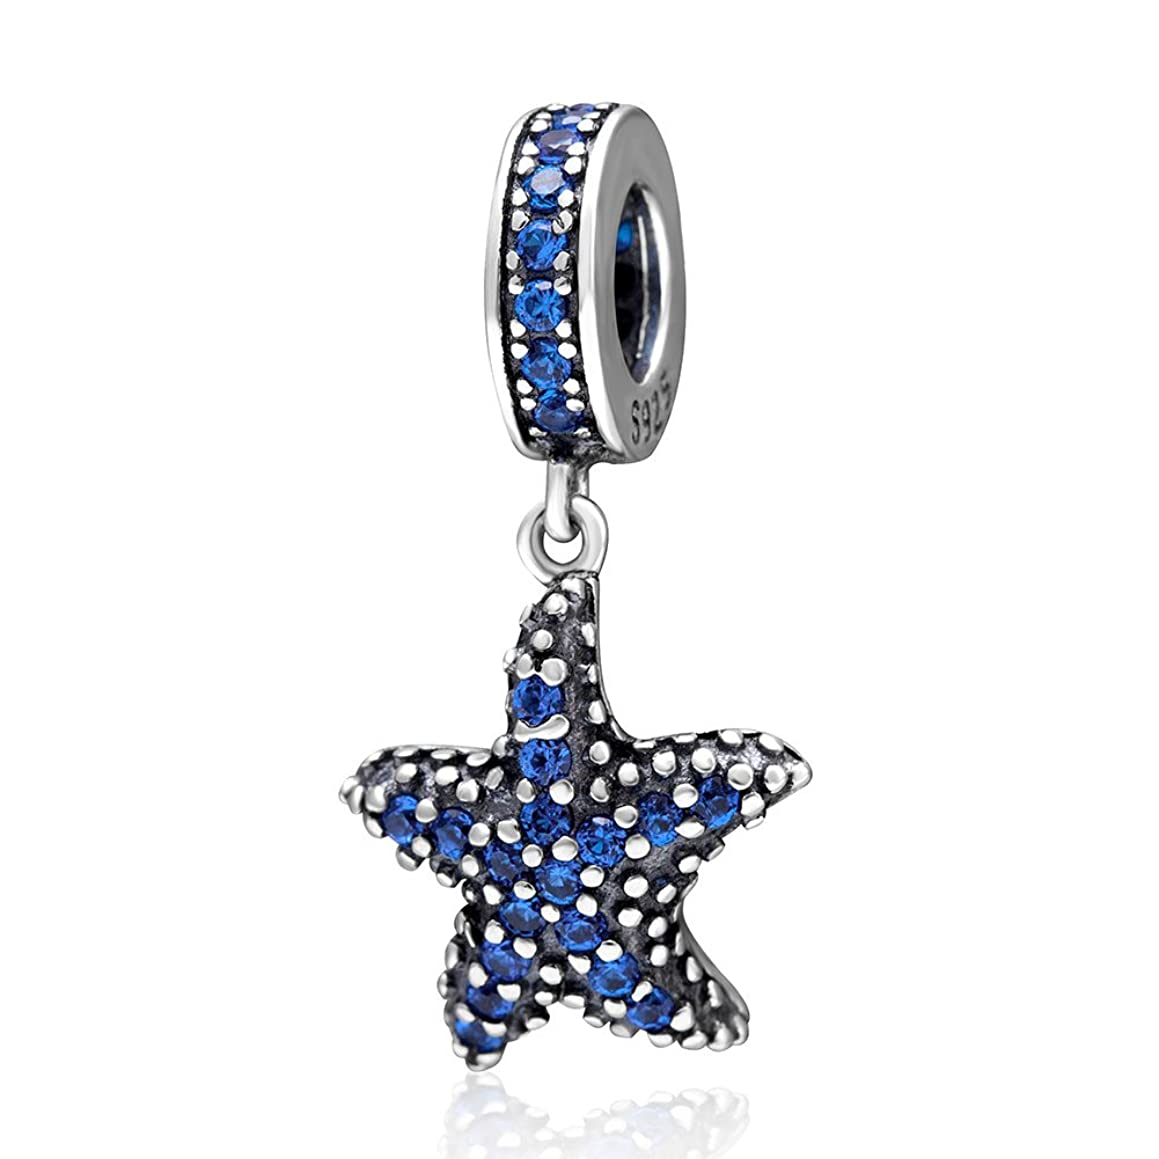 Blue Starfish Dangle Charm 925 Sterling Silver Sea Star Beads fit for DIY Charms Bracelets